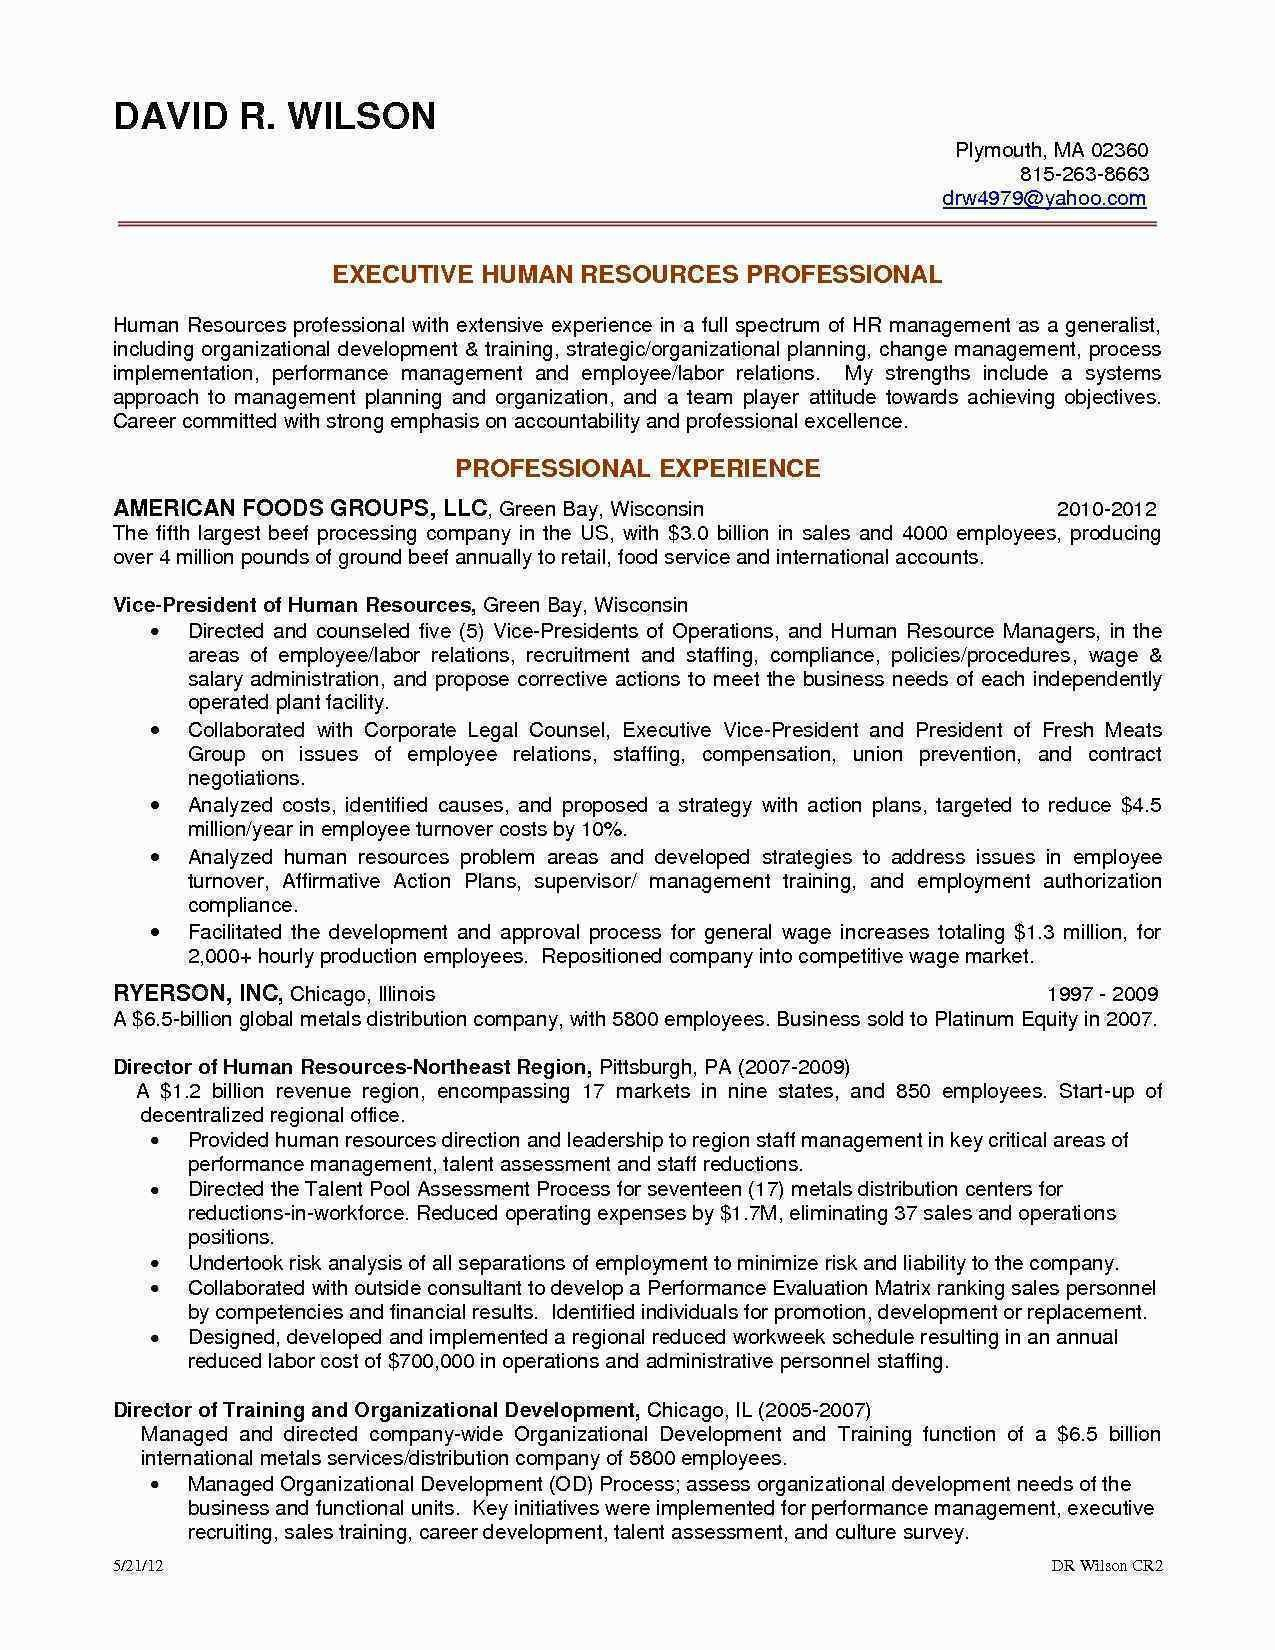 Resume Sample Business Analyst - Business Analyst Resume Banking Domain Individuals Enhance their Job